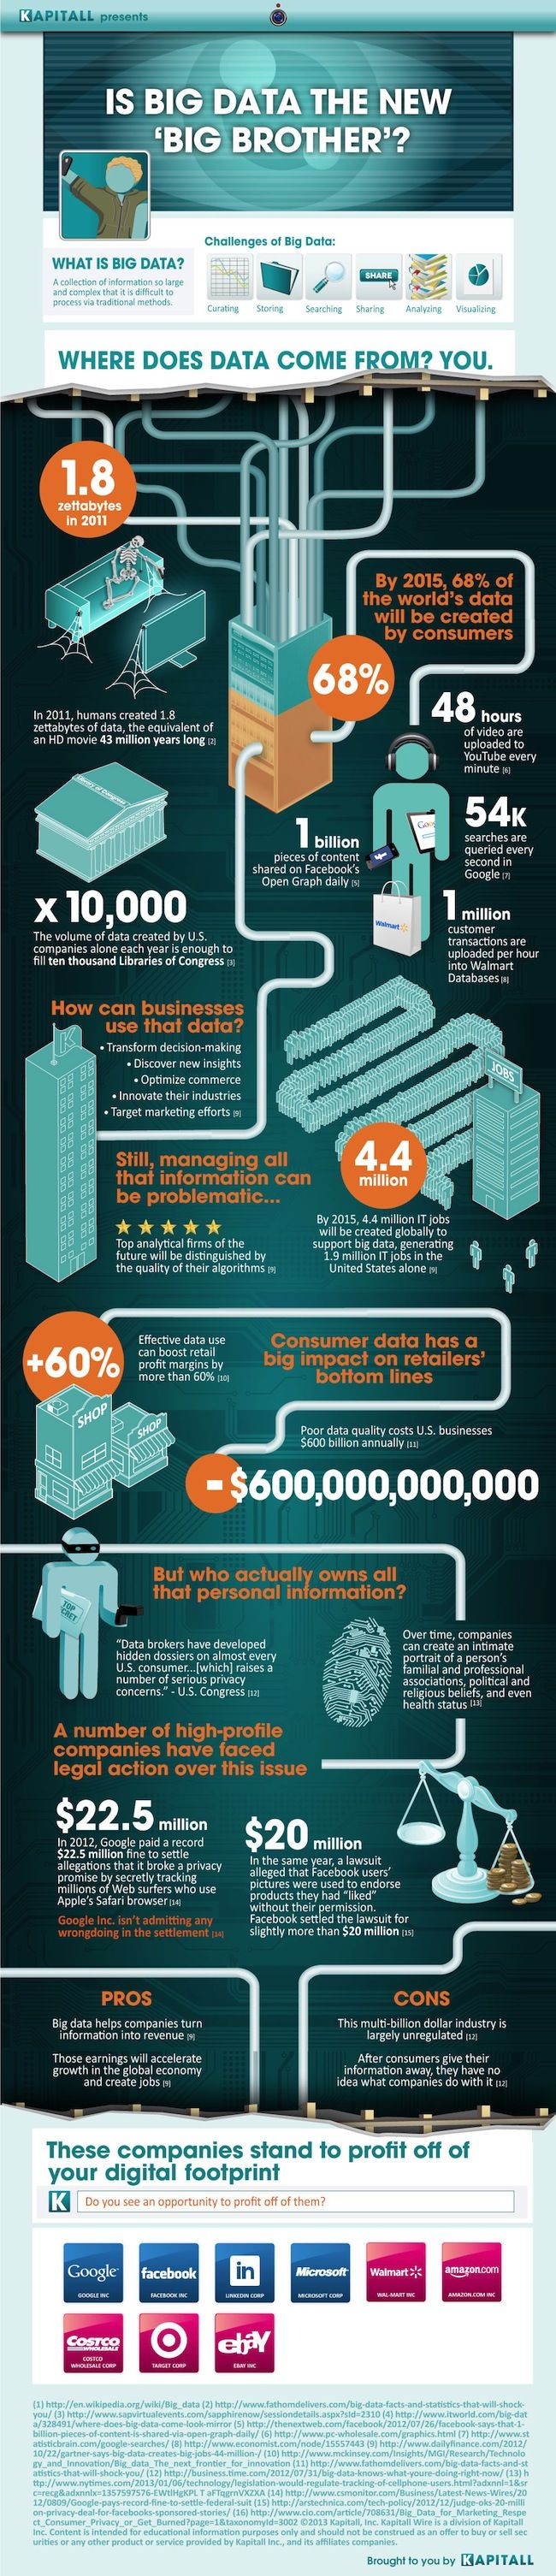 Infographic: Big Brother's Big Data Spurs Profits and Privacy Concerns